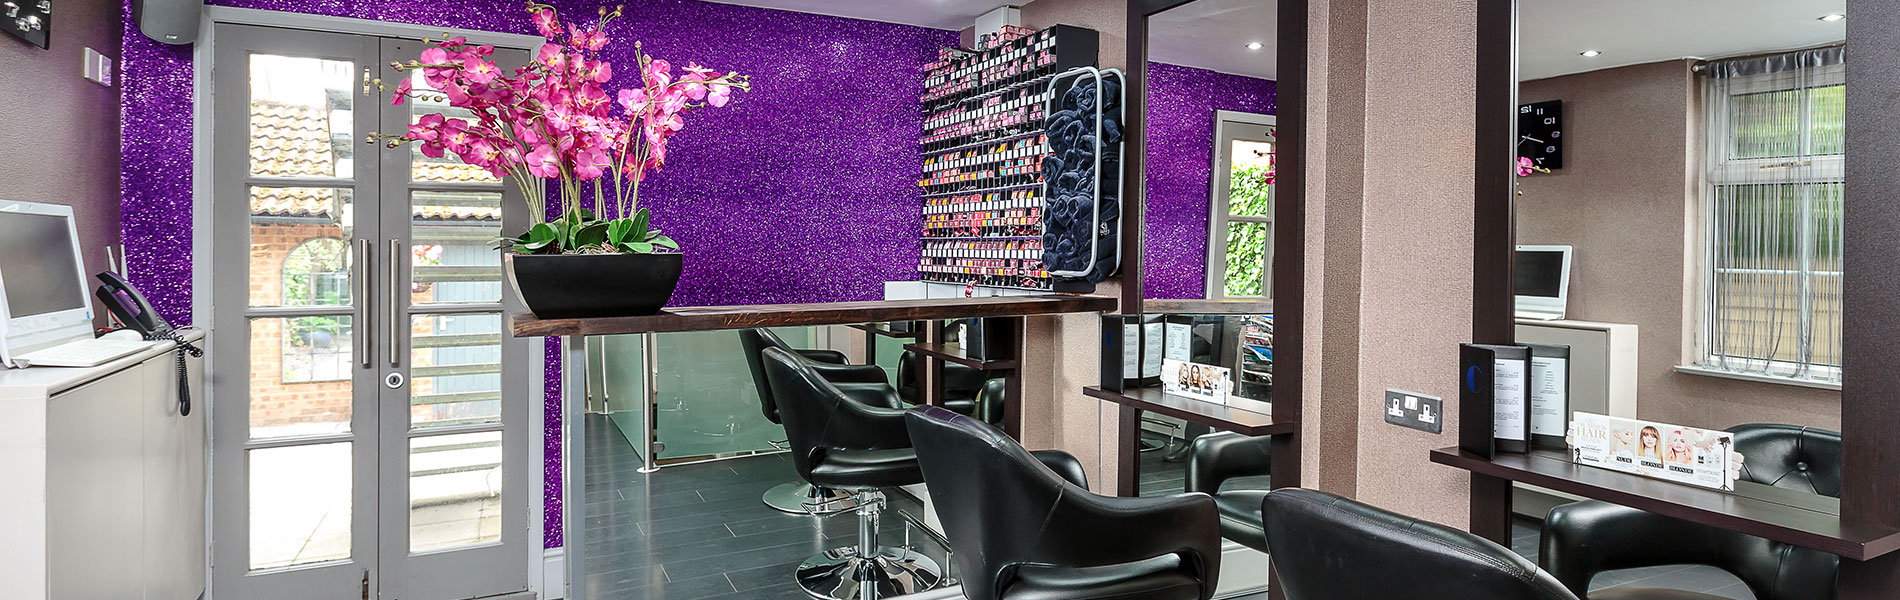 hair and beauty salon weybridge, Surrey